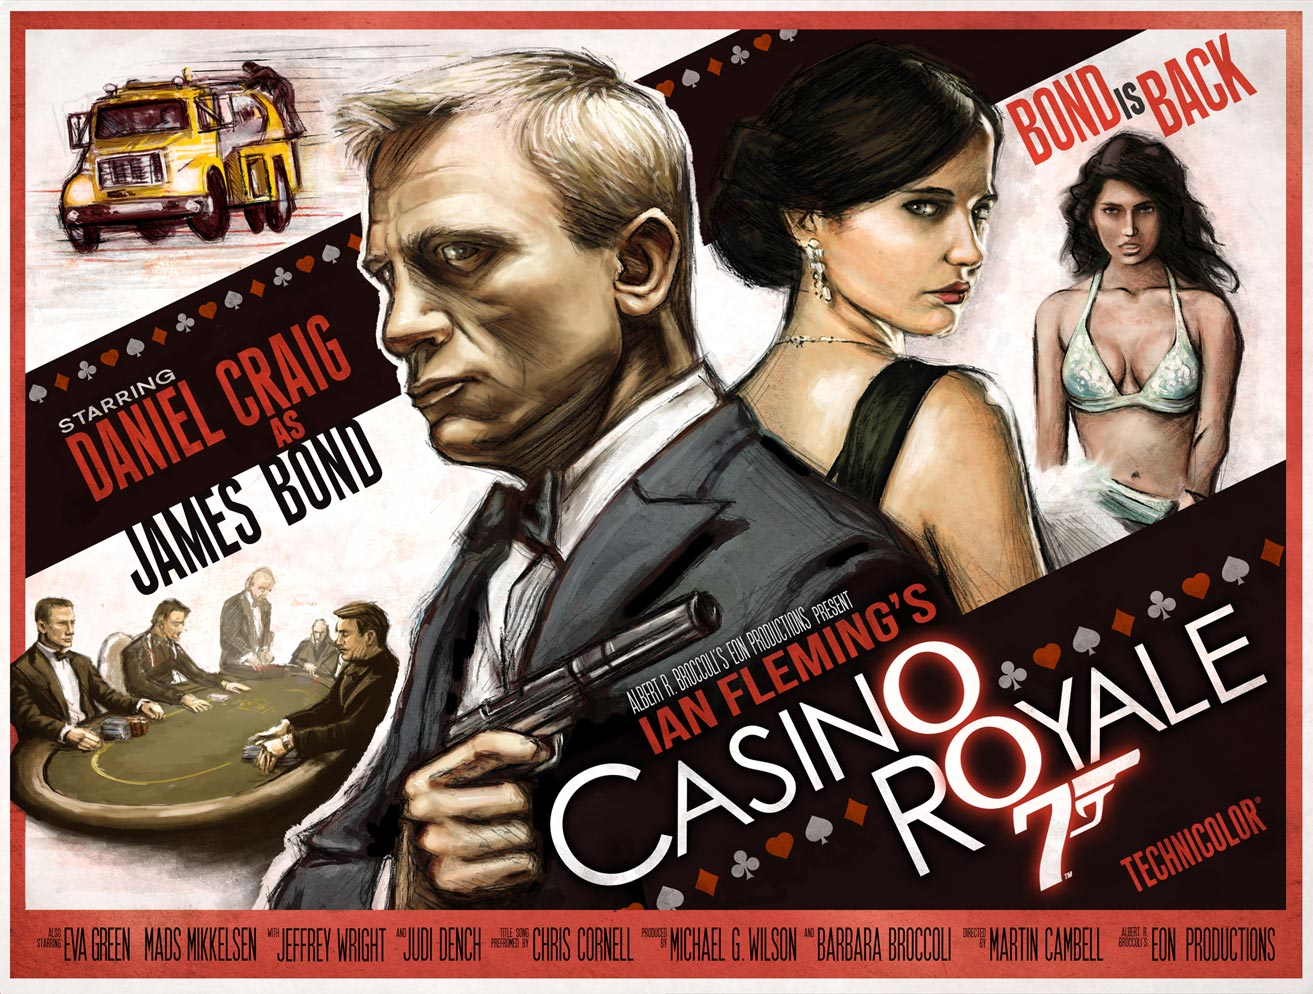 An amazing FRWL-inspired retro poster for Casino Royale by Jeff Chapman.